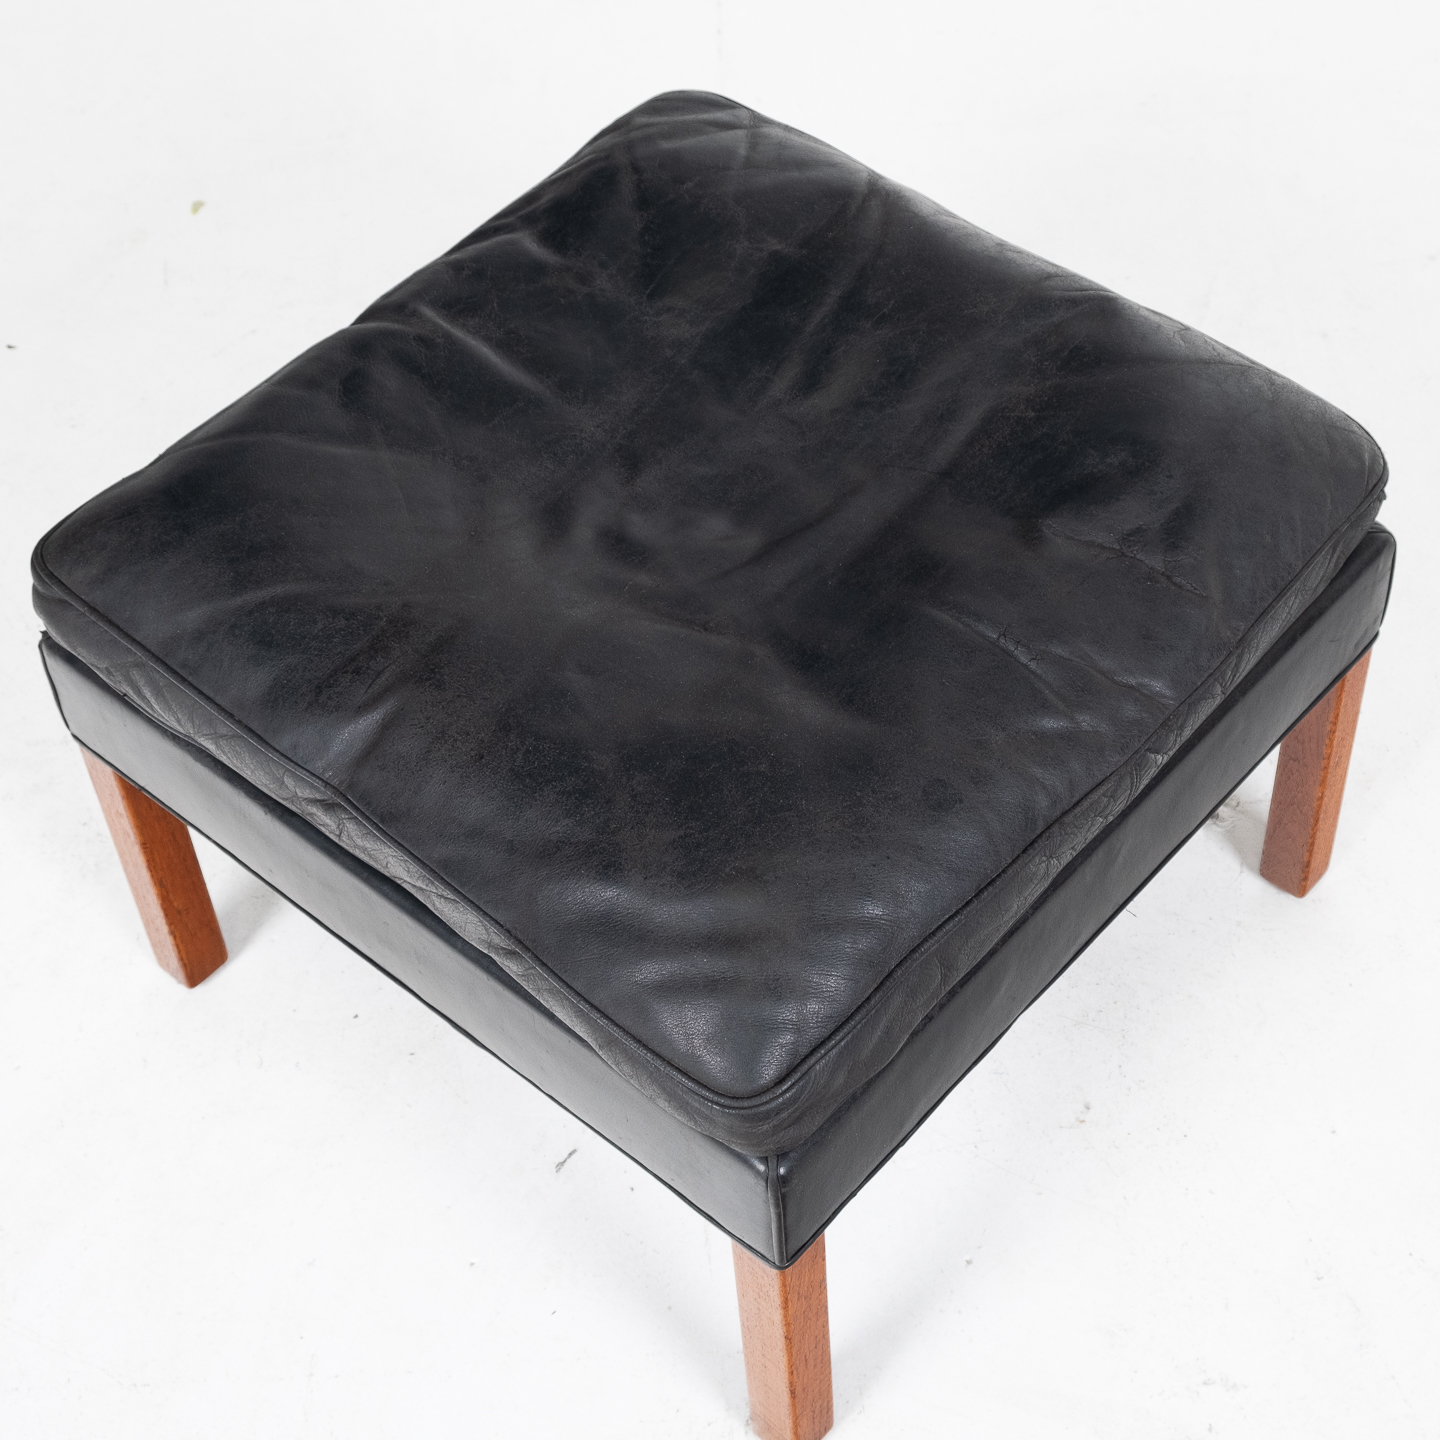 Model 2207 Armchair With Footstool Designed By Borge Mogensen For Fredericia Mobelfabrik In Black Leather, 1960s, Denmark 0000014